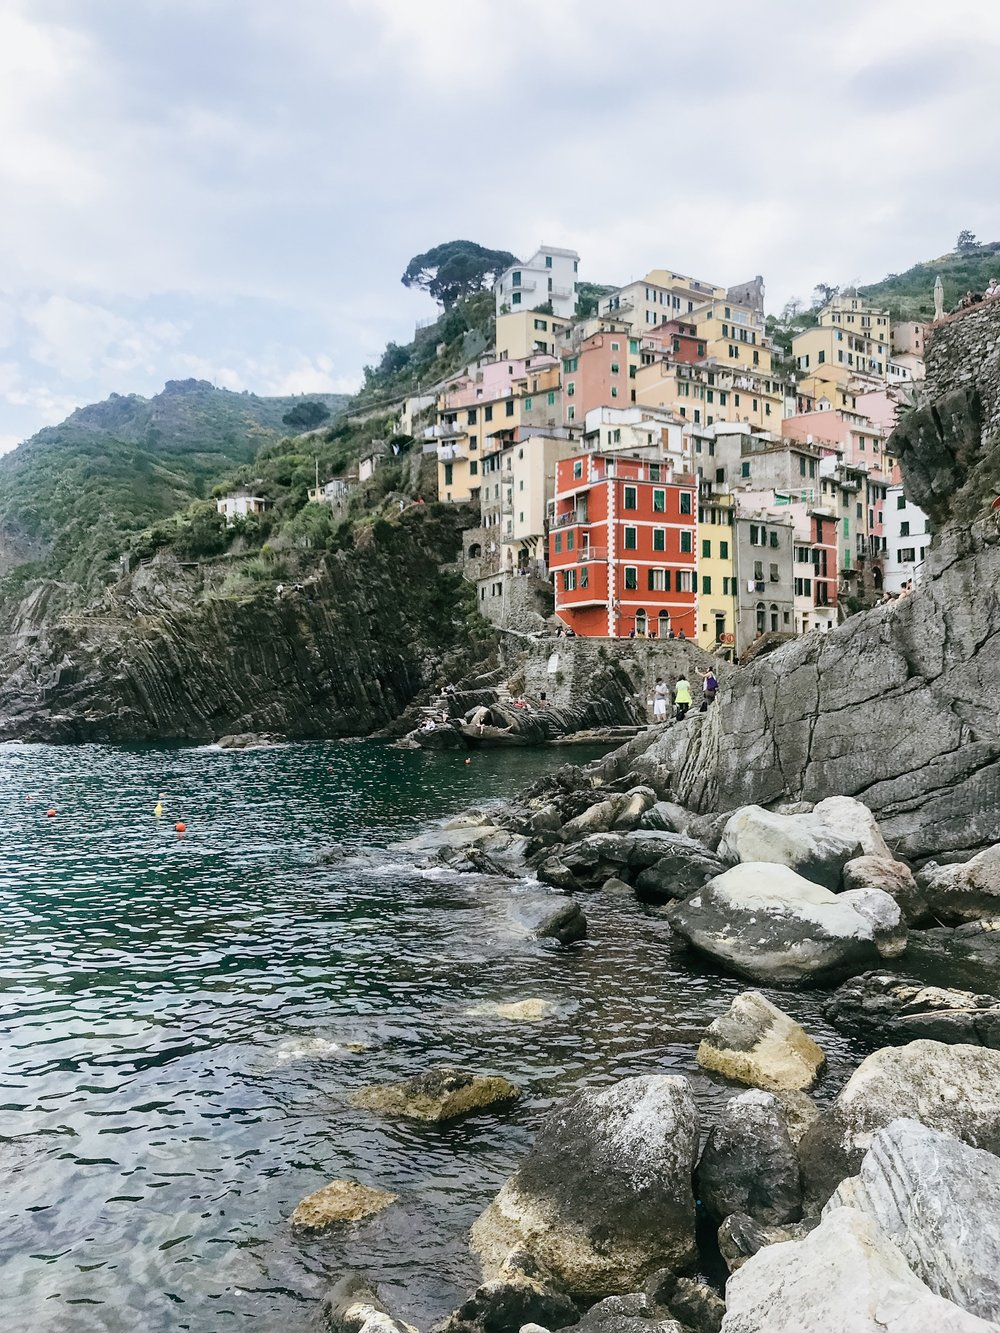 The village of Riomaggiore